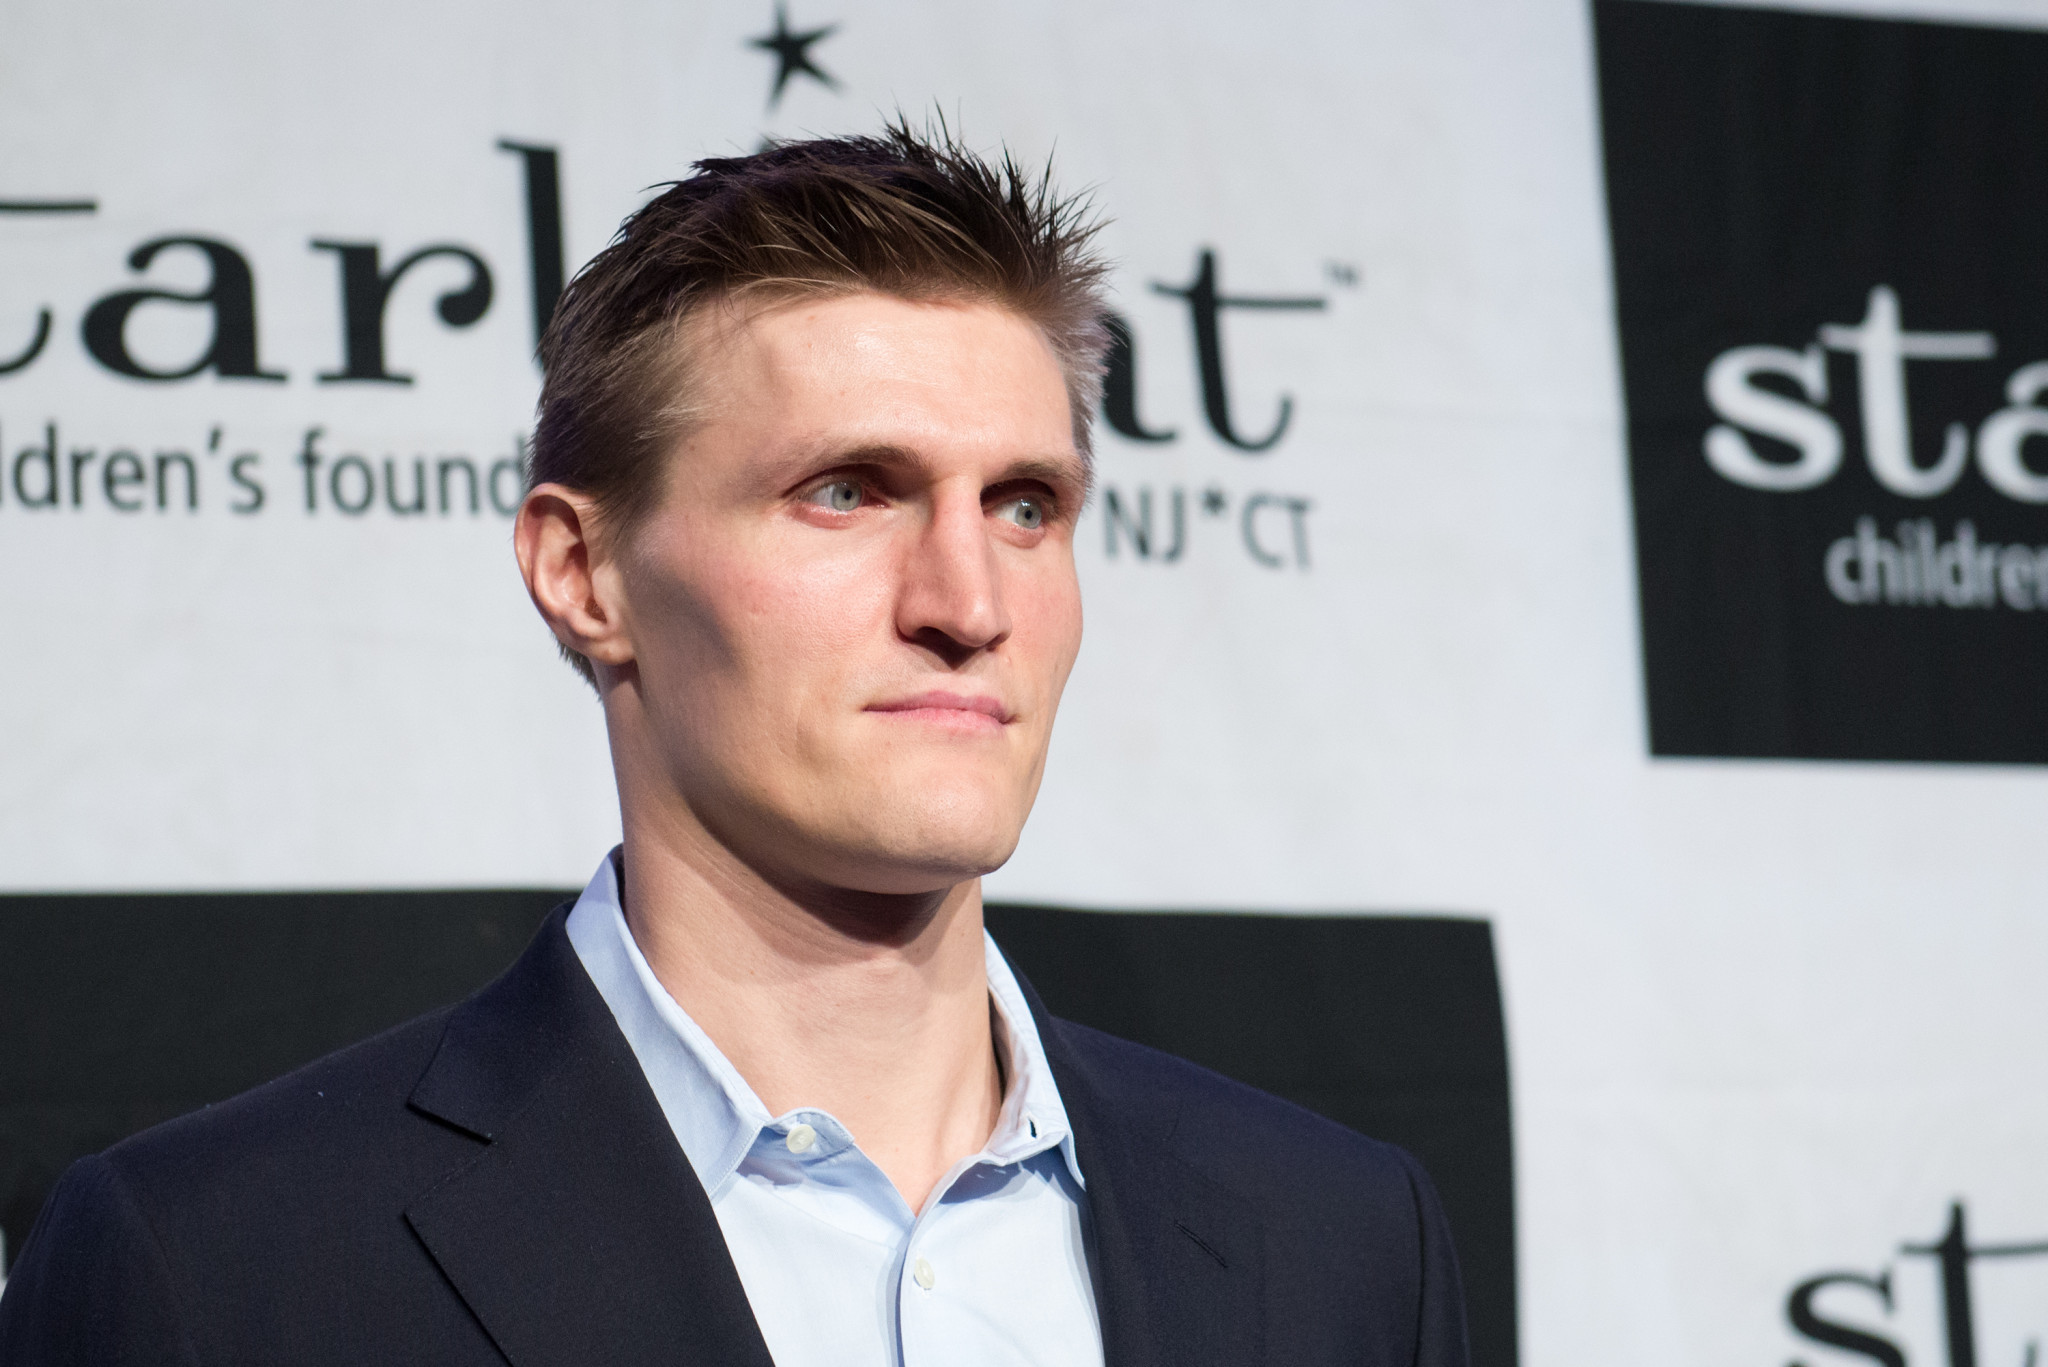 Russian Basketball Federation President Andrei Kirilenko said the 'negative attitude' towards Russian sport at the moment was the reason for Russia's withdrawal from the 2023 bidding process ©Getty Images